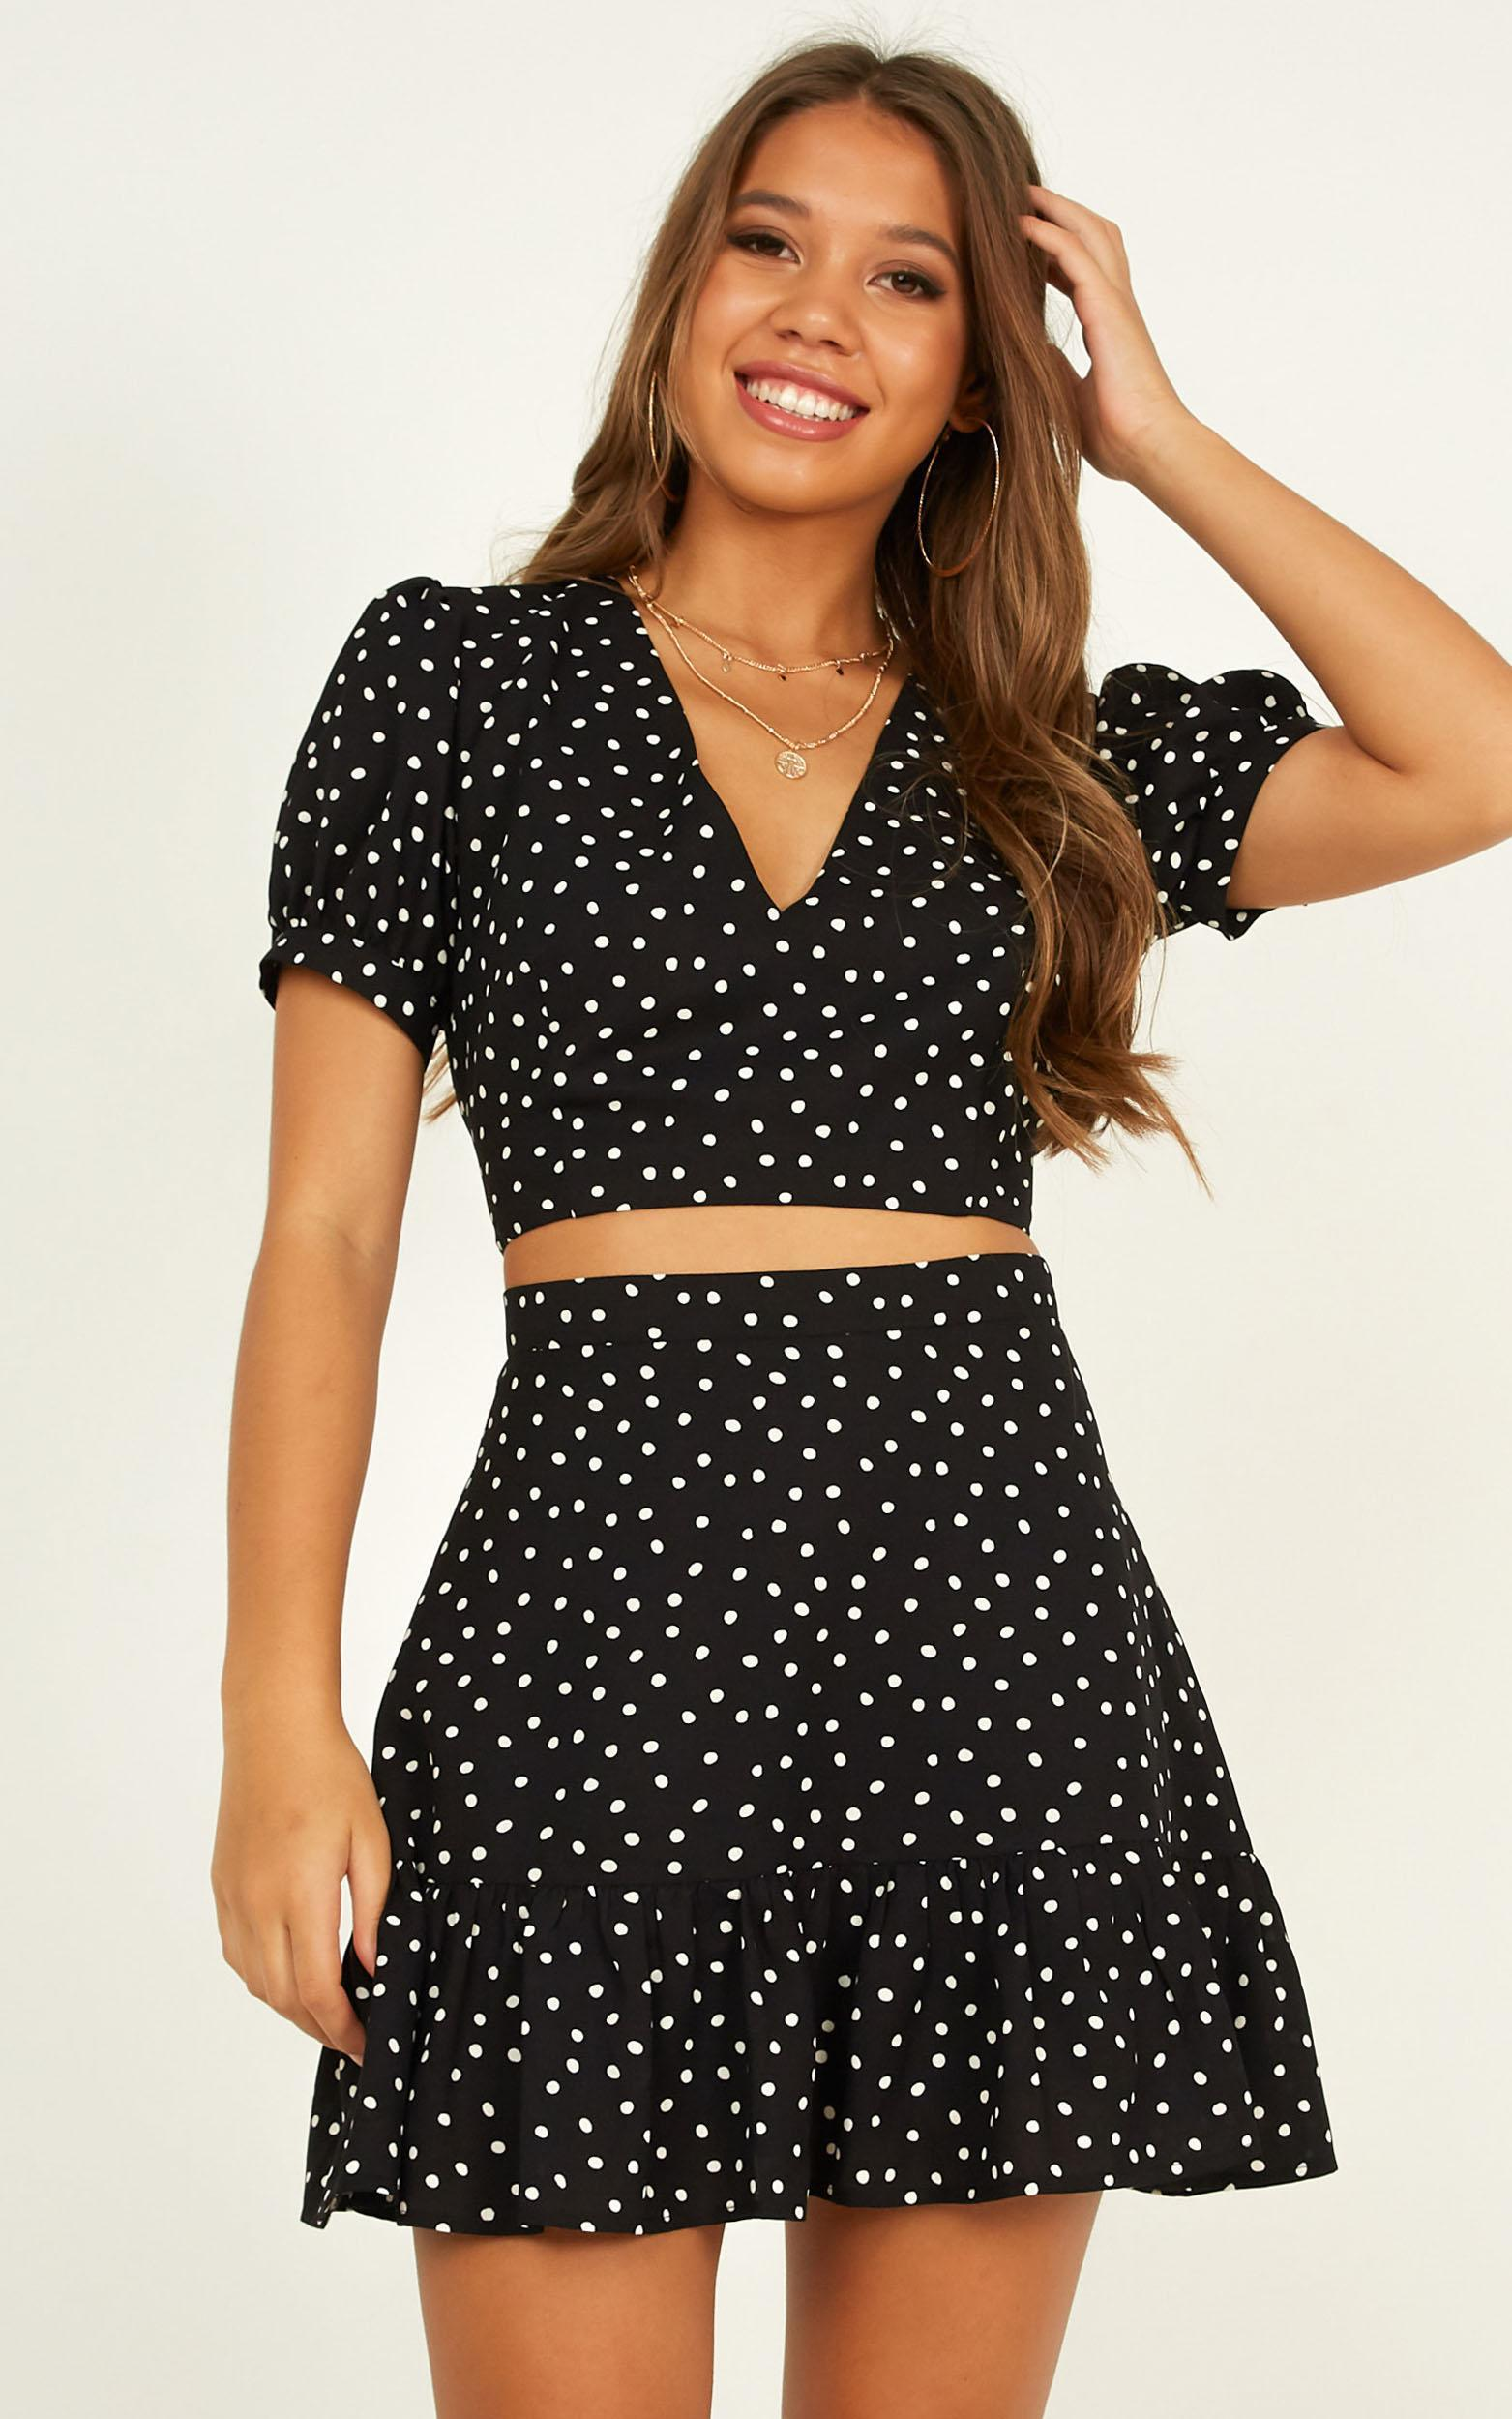 Solstice Two Piece Set In black spot - 20 (XXXXL), Black, hi-res image number null